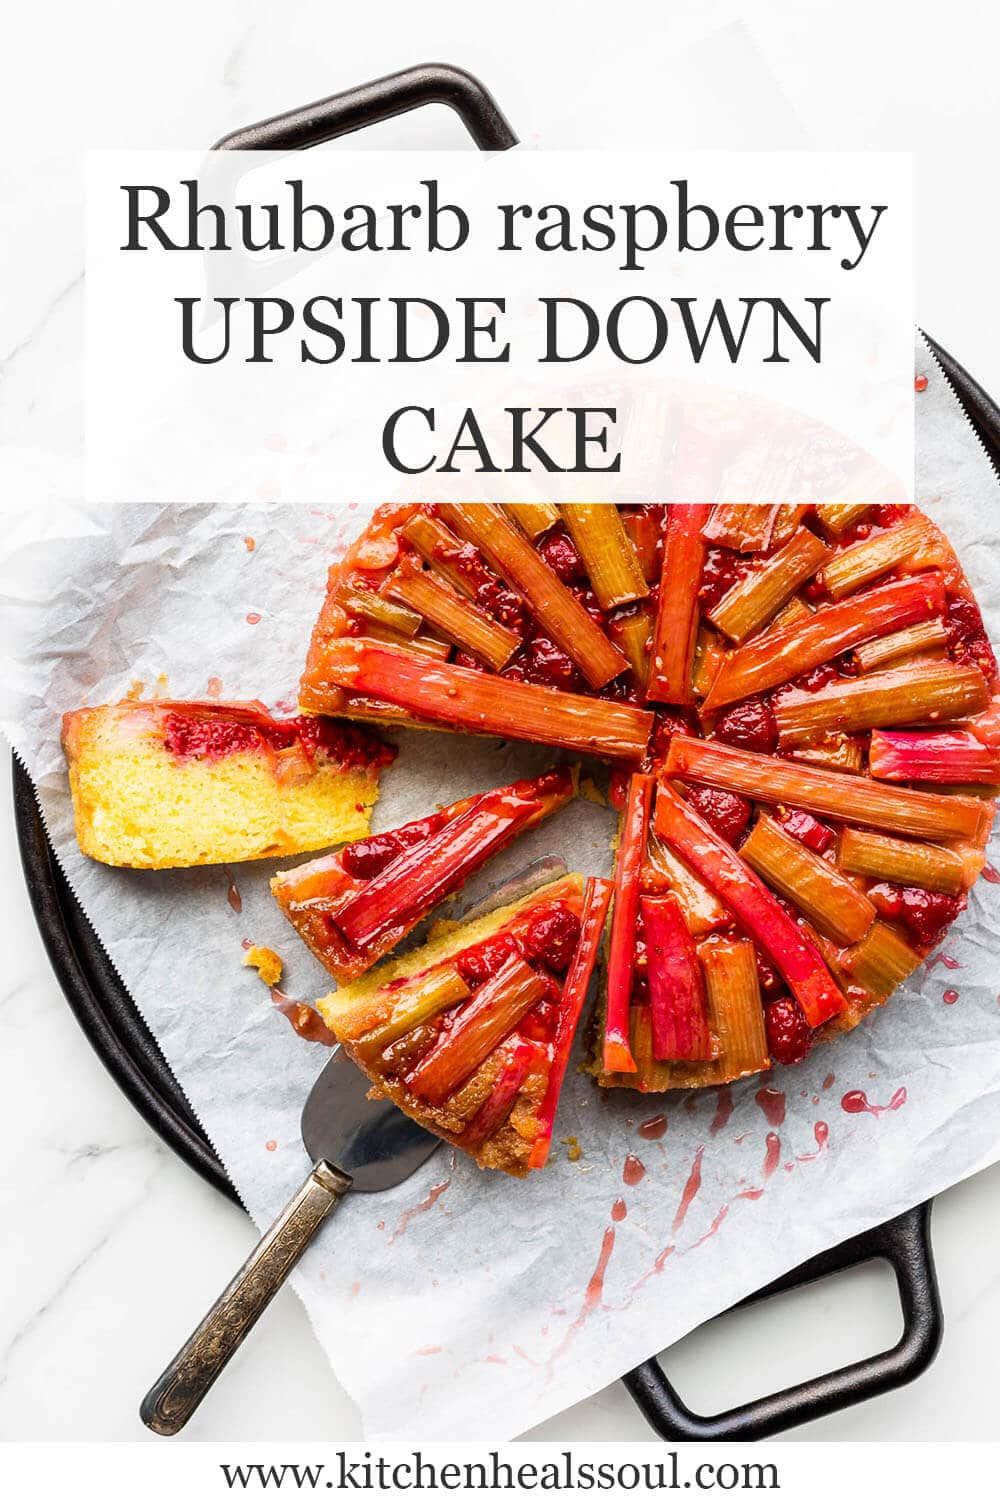 Rhubarb raspberry upside down cake on a parchment lined round black tray, cut into a few slices with a cake lifter under a slice